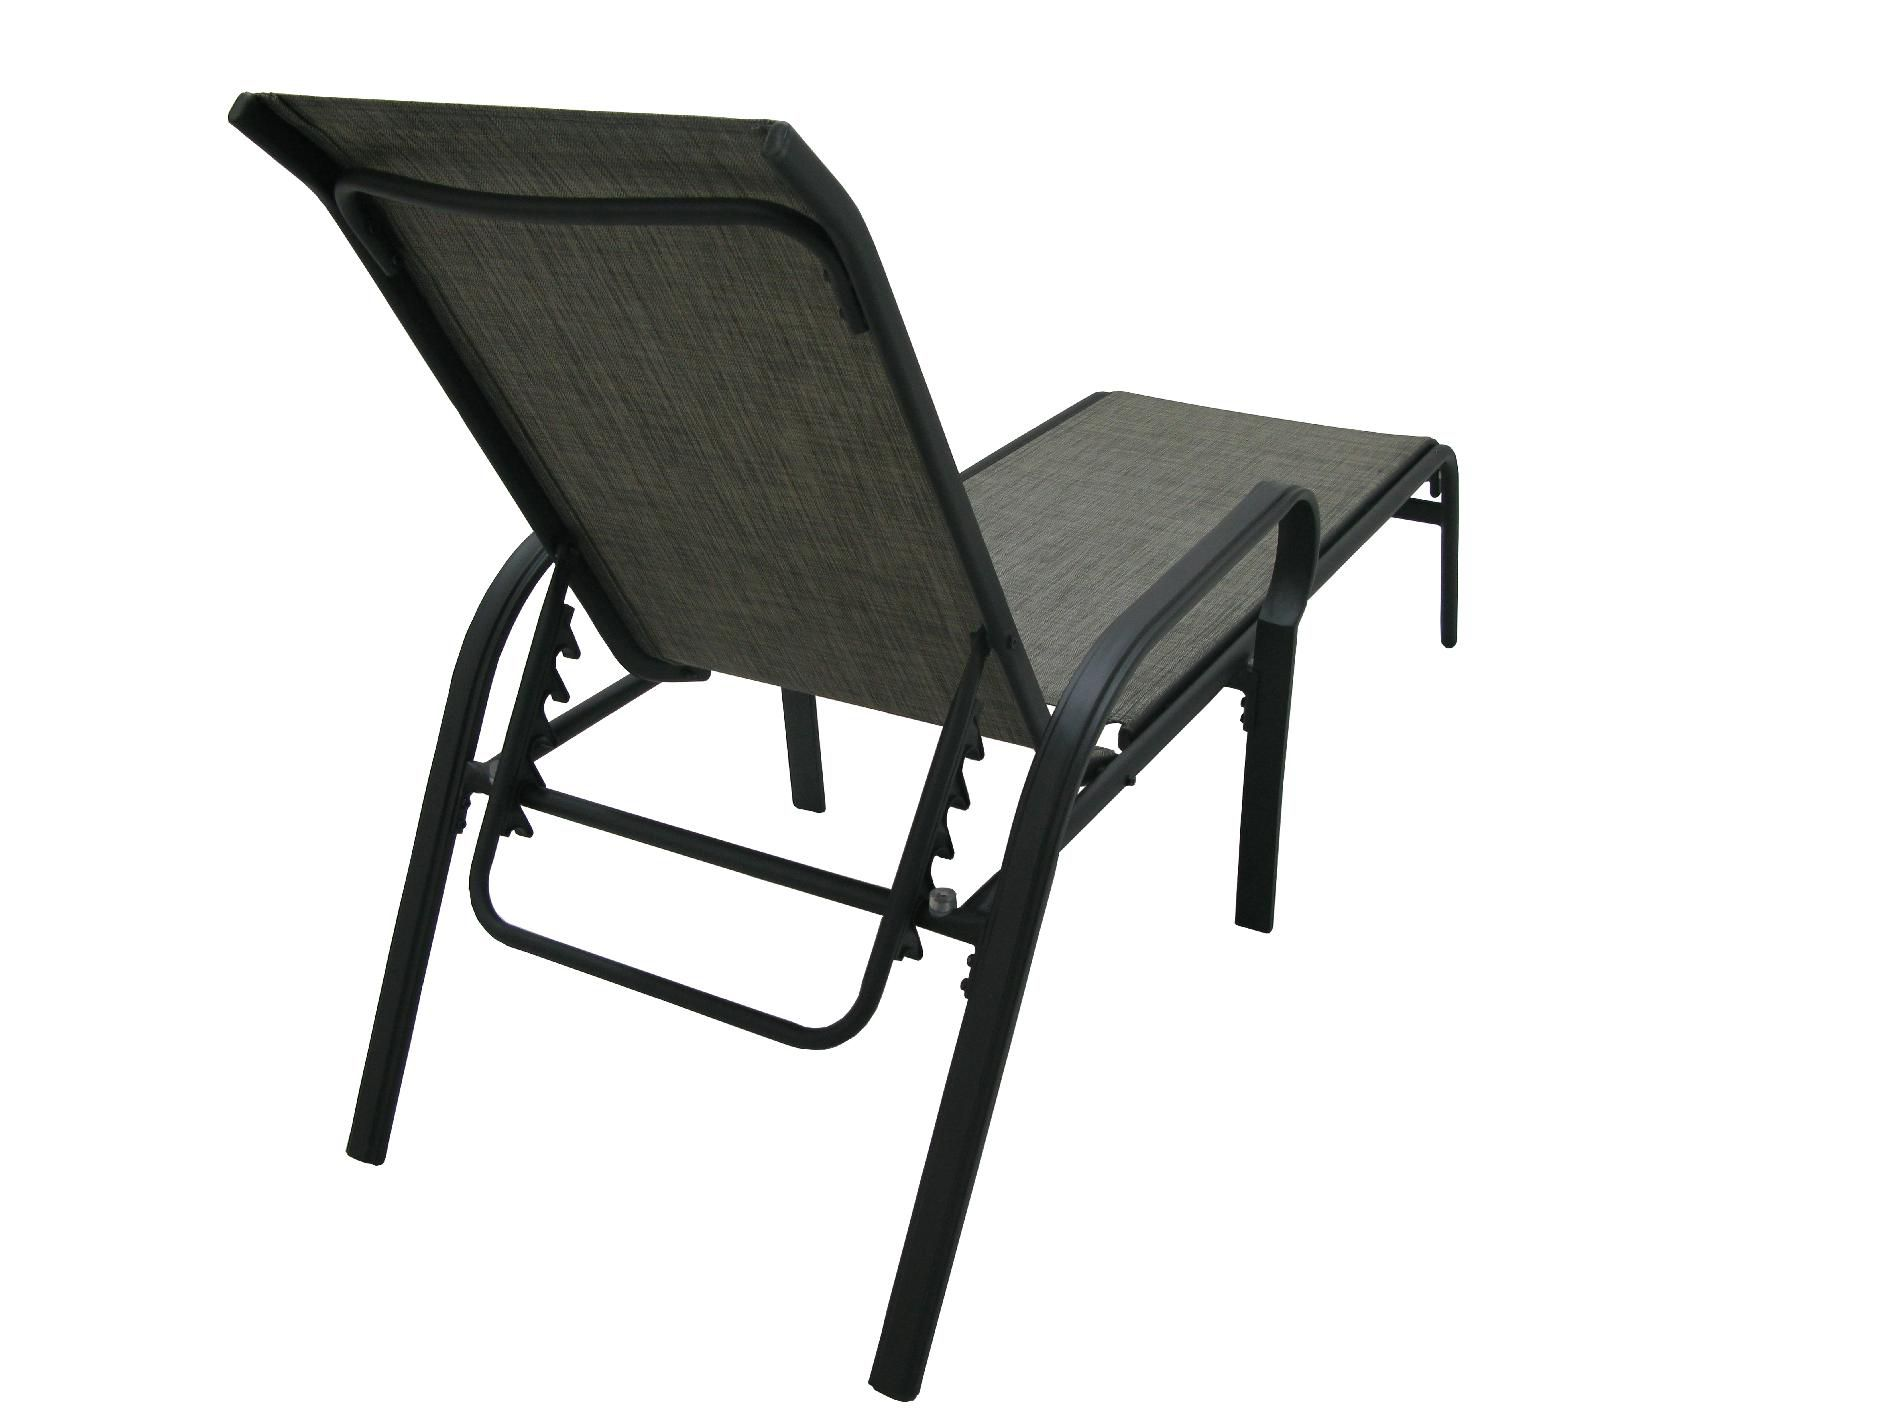 Garden Oasis East Point Sling Chaise Lounge